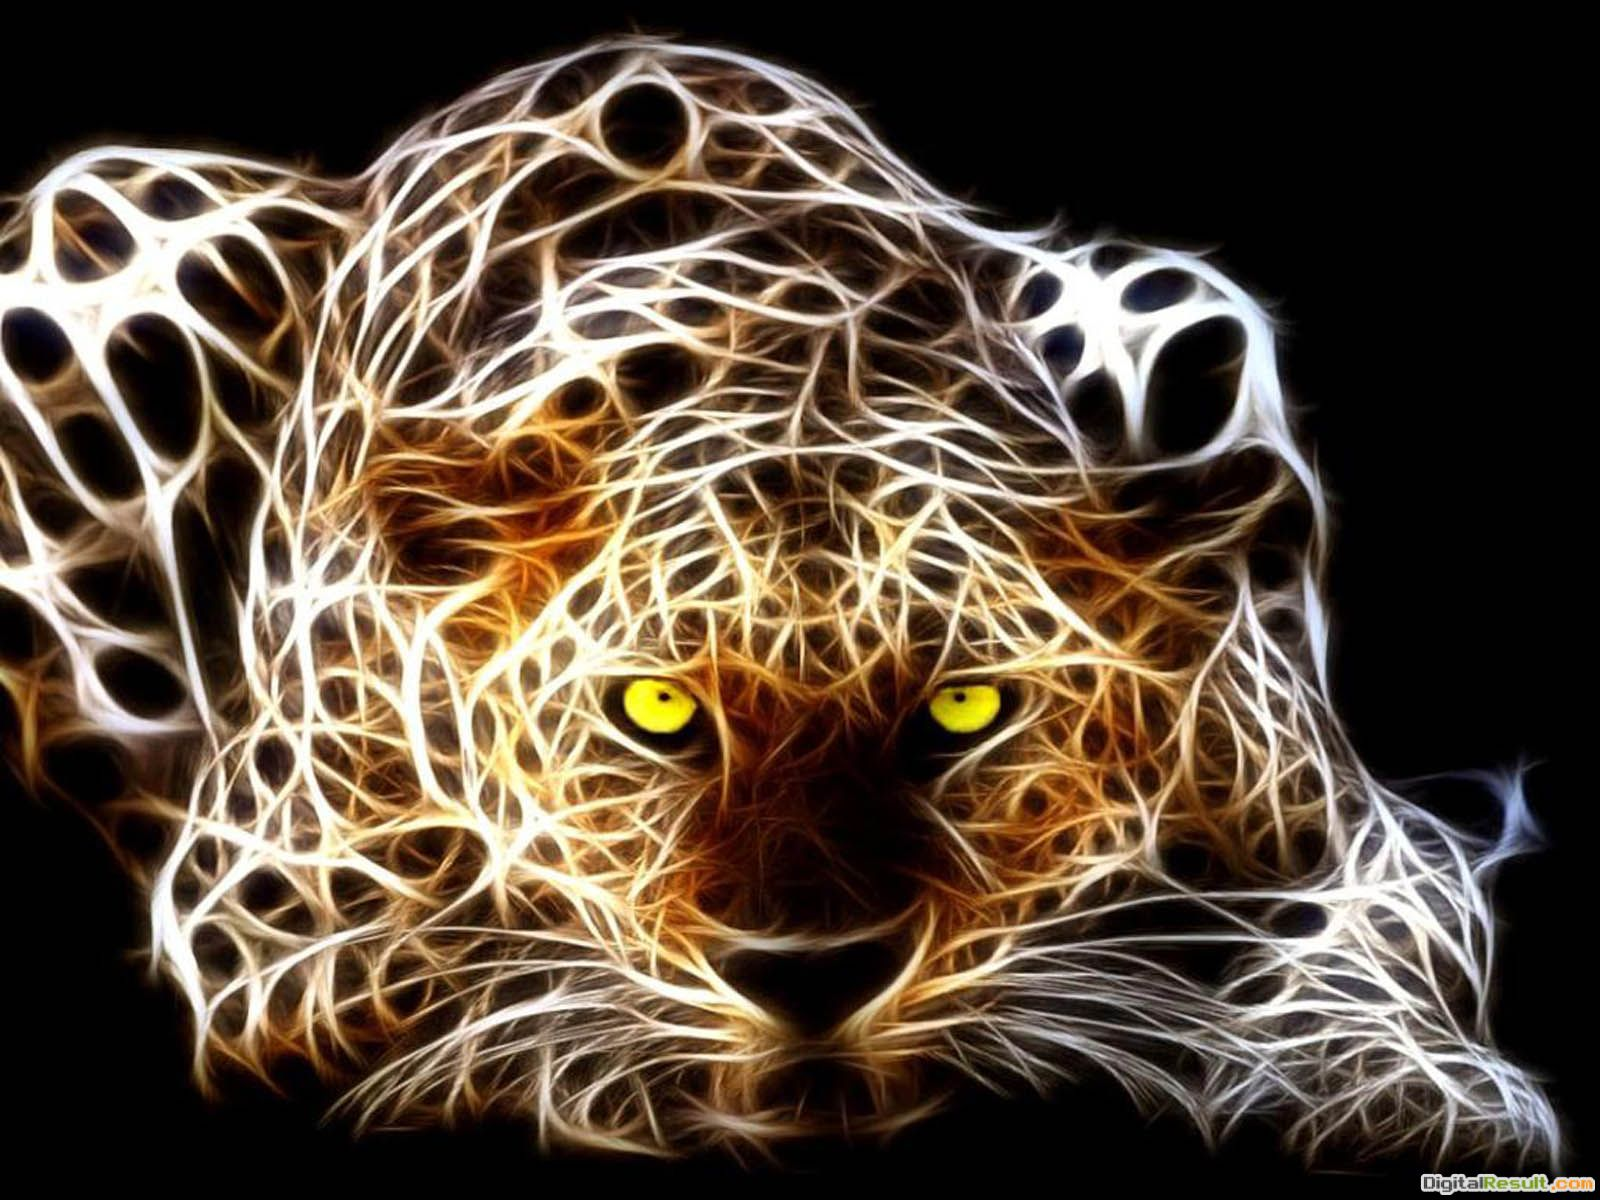 Tag: Tiger 3D Wallpapers, Images, Photos, Pictures and Backgrounds for 1979